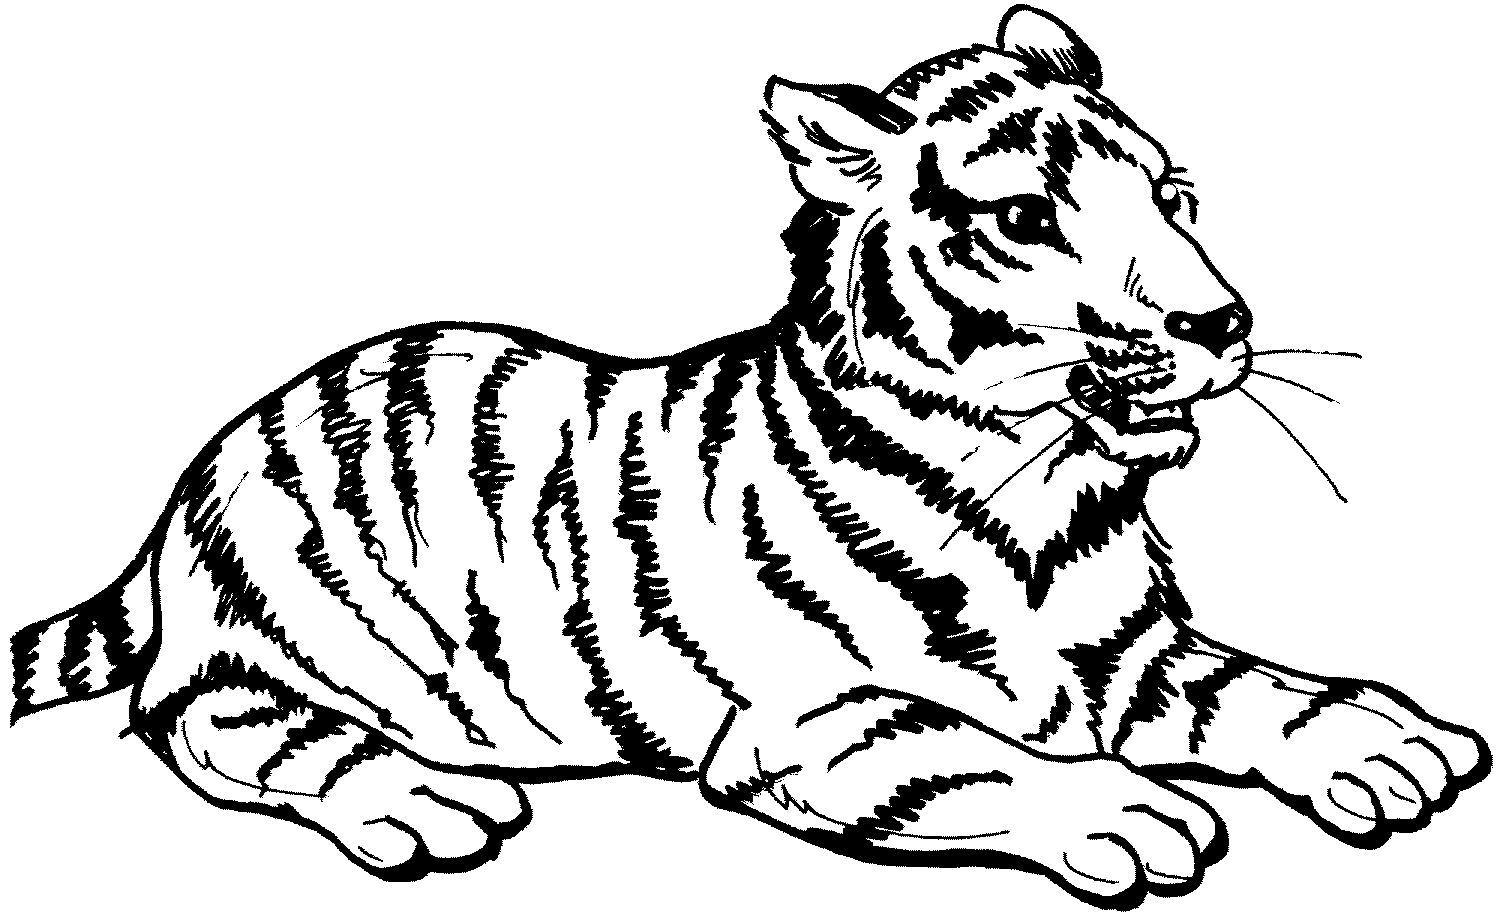 Zoo Animals Coloring Pages Zoo Animals Coloring Pages Coloring Ideas